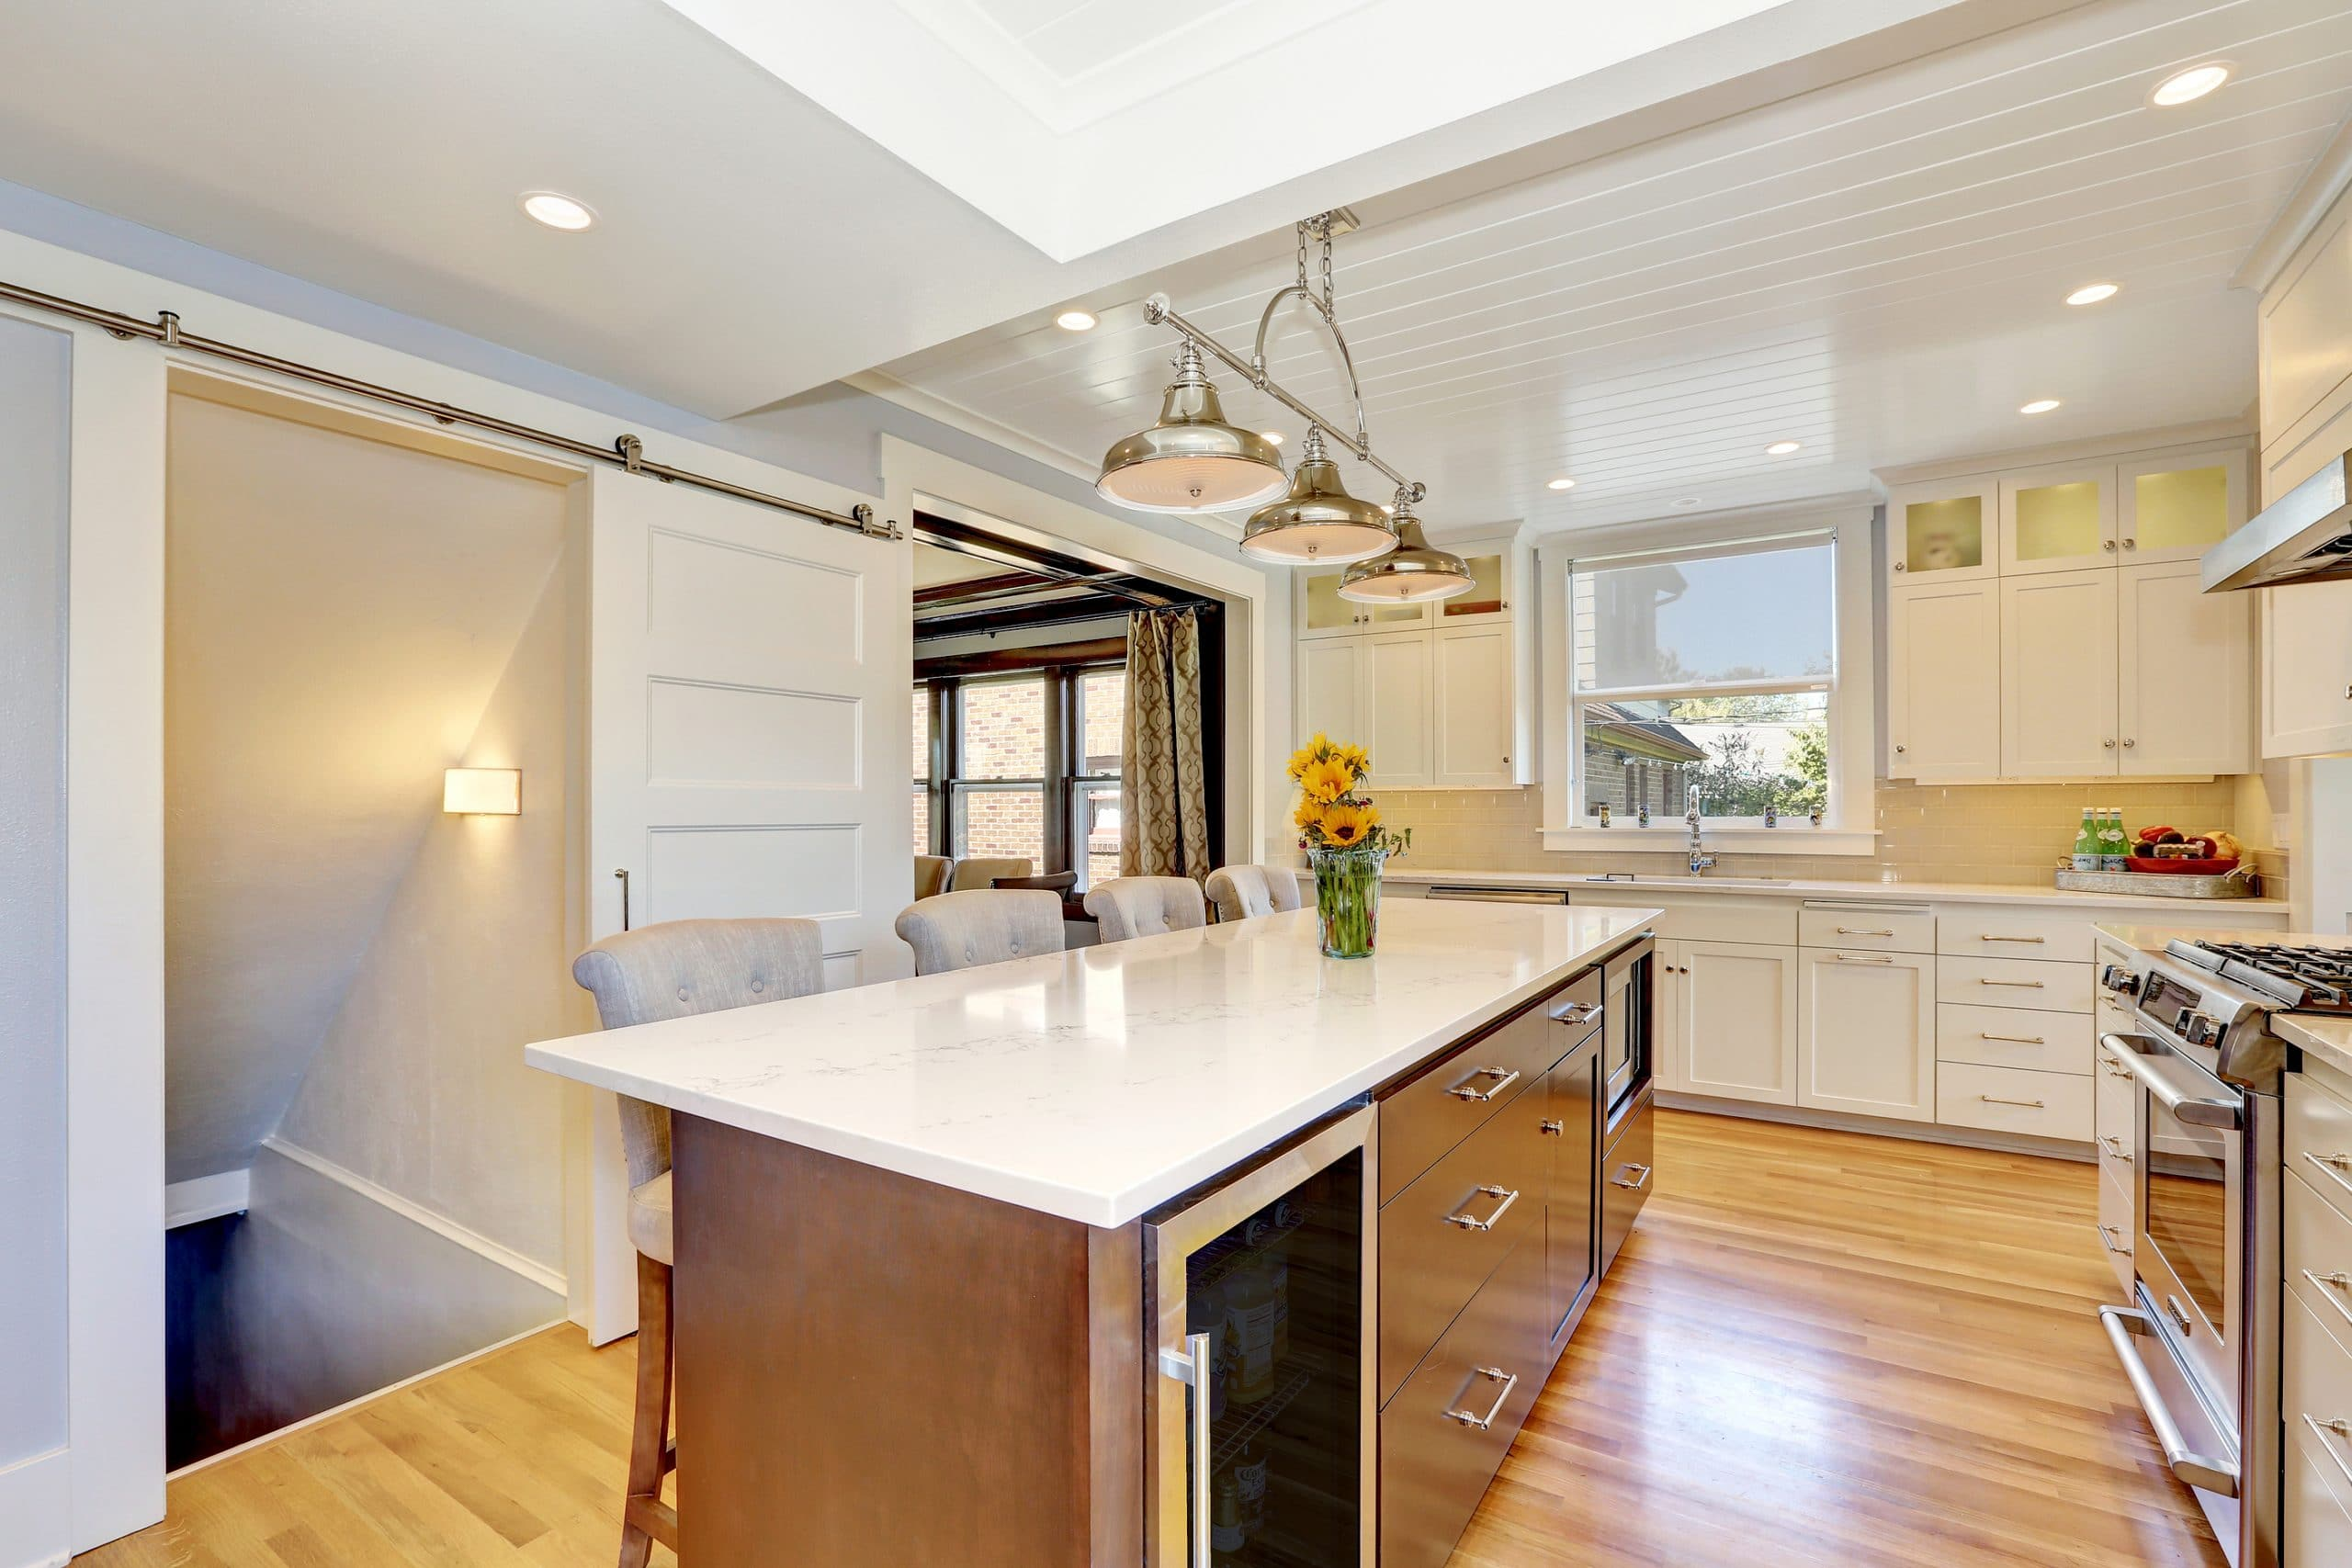 What's Trending in Kitchens in 2021